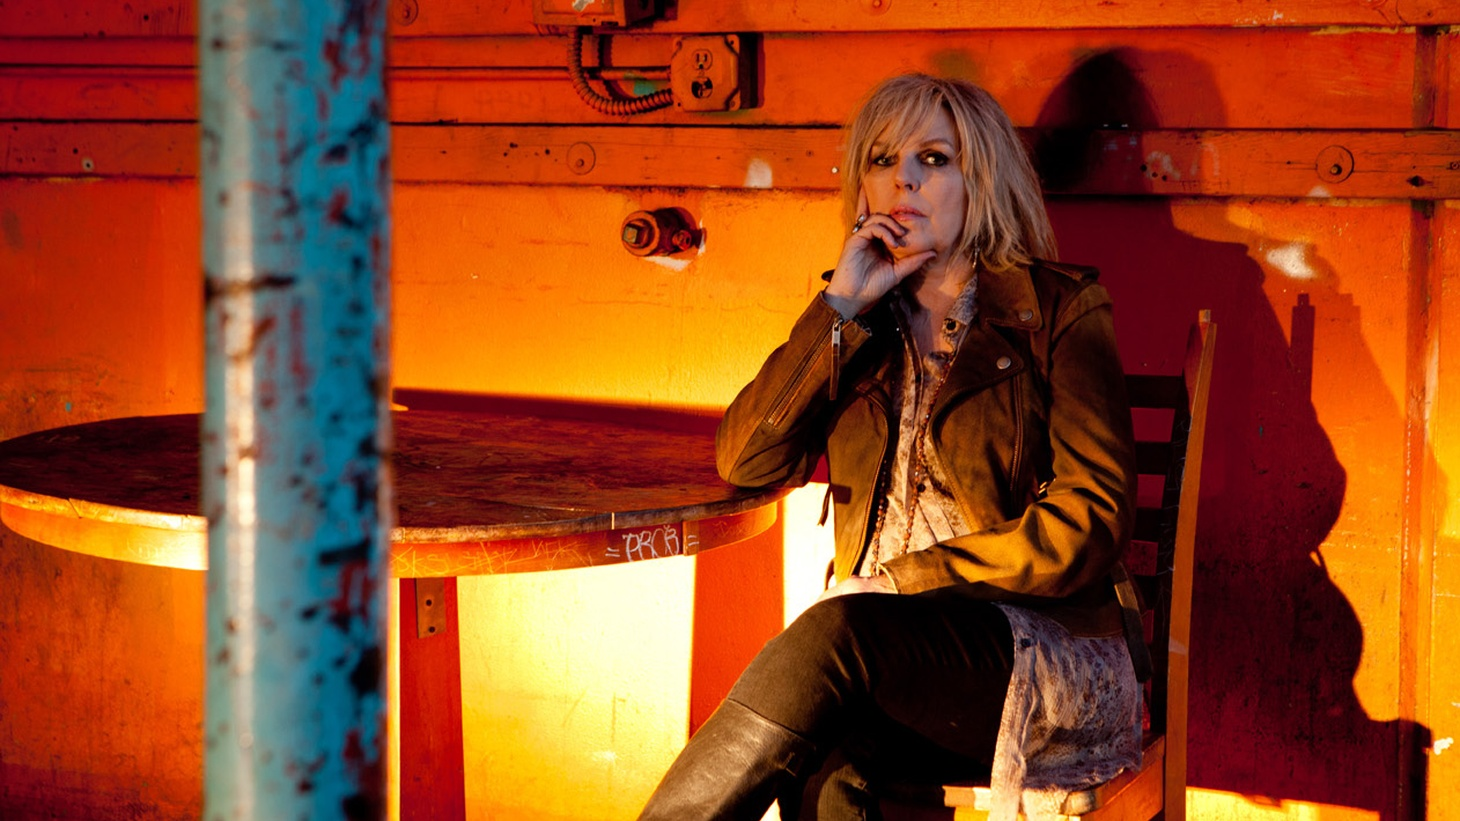 There's something wonderfully contrarian about Lucinda Williams ending one of her multi-year silences with a double album. In 2014, no one is supposed to have time to appreciate three straight songs from one artist, much less an entire album.